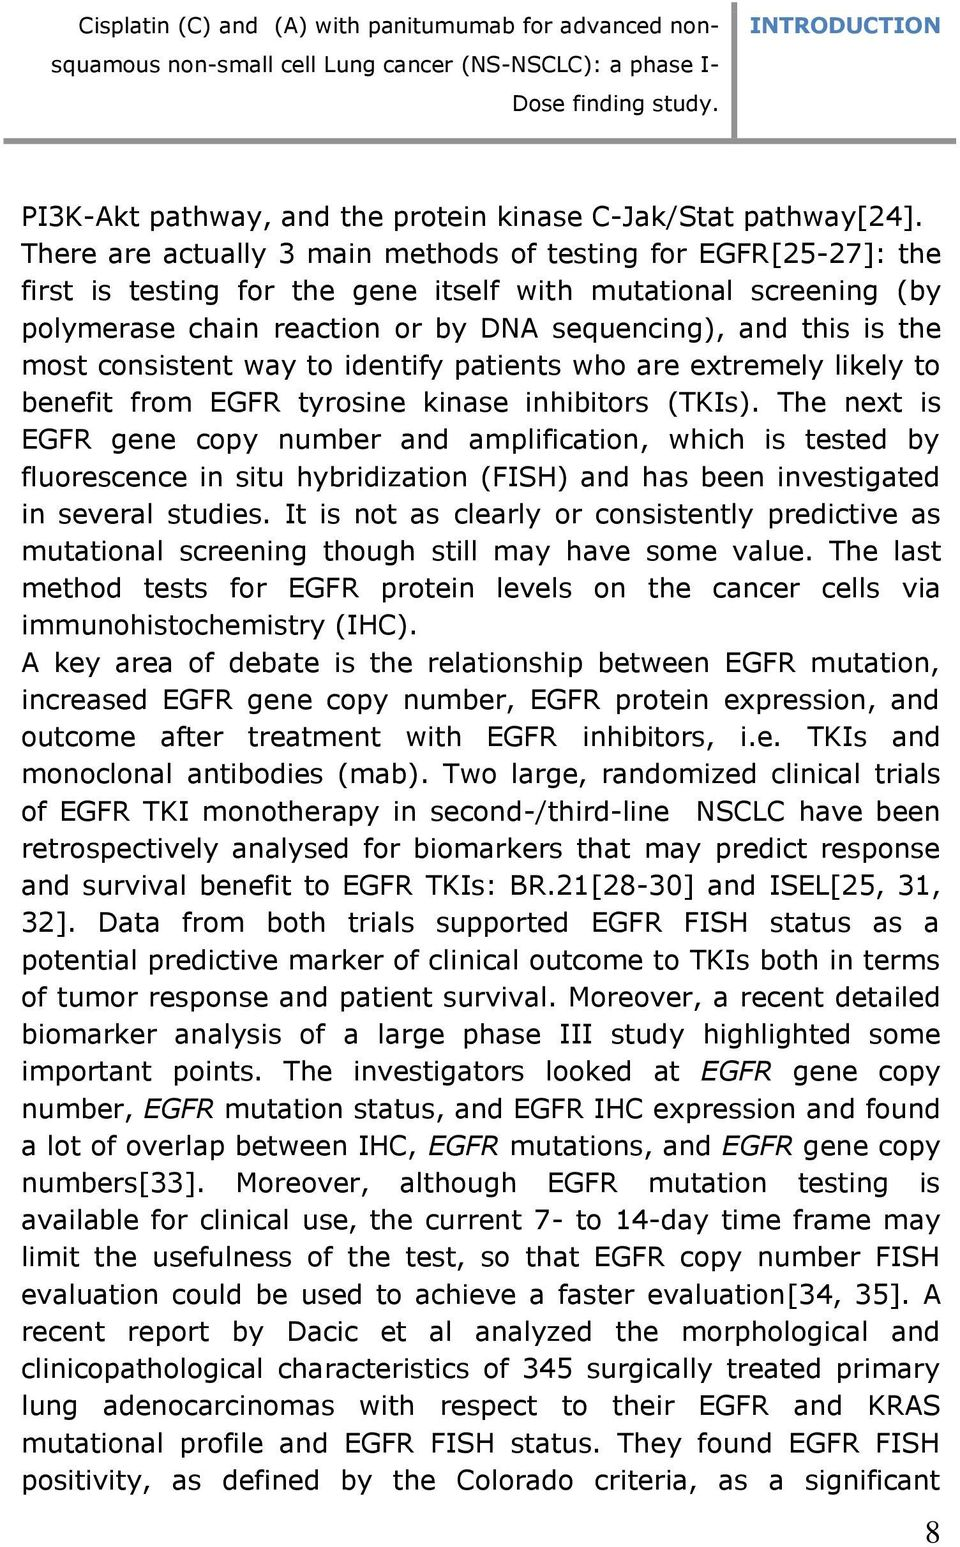 There are actually 3 main methods of testing for EGFR[25-27]: the first is testing for the gene itself with mutational screening (by polymerase chain reaction or by DNA sequencing), and this is the